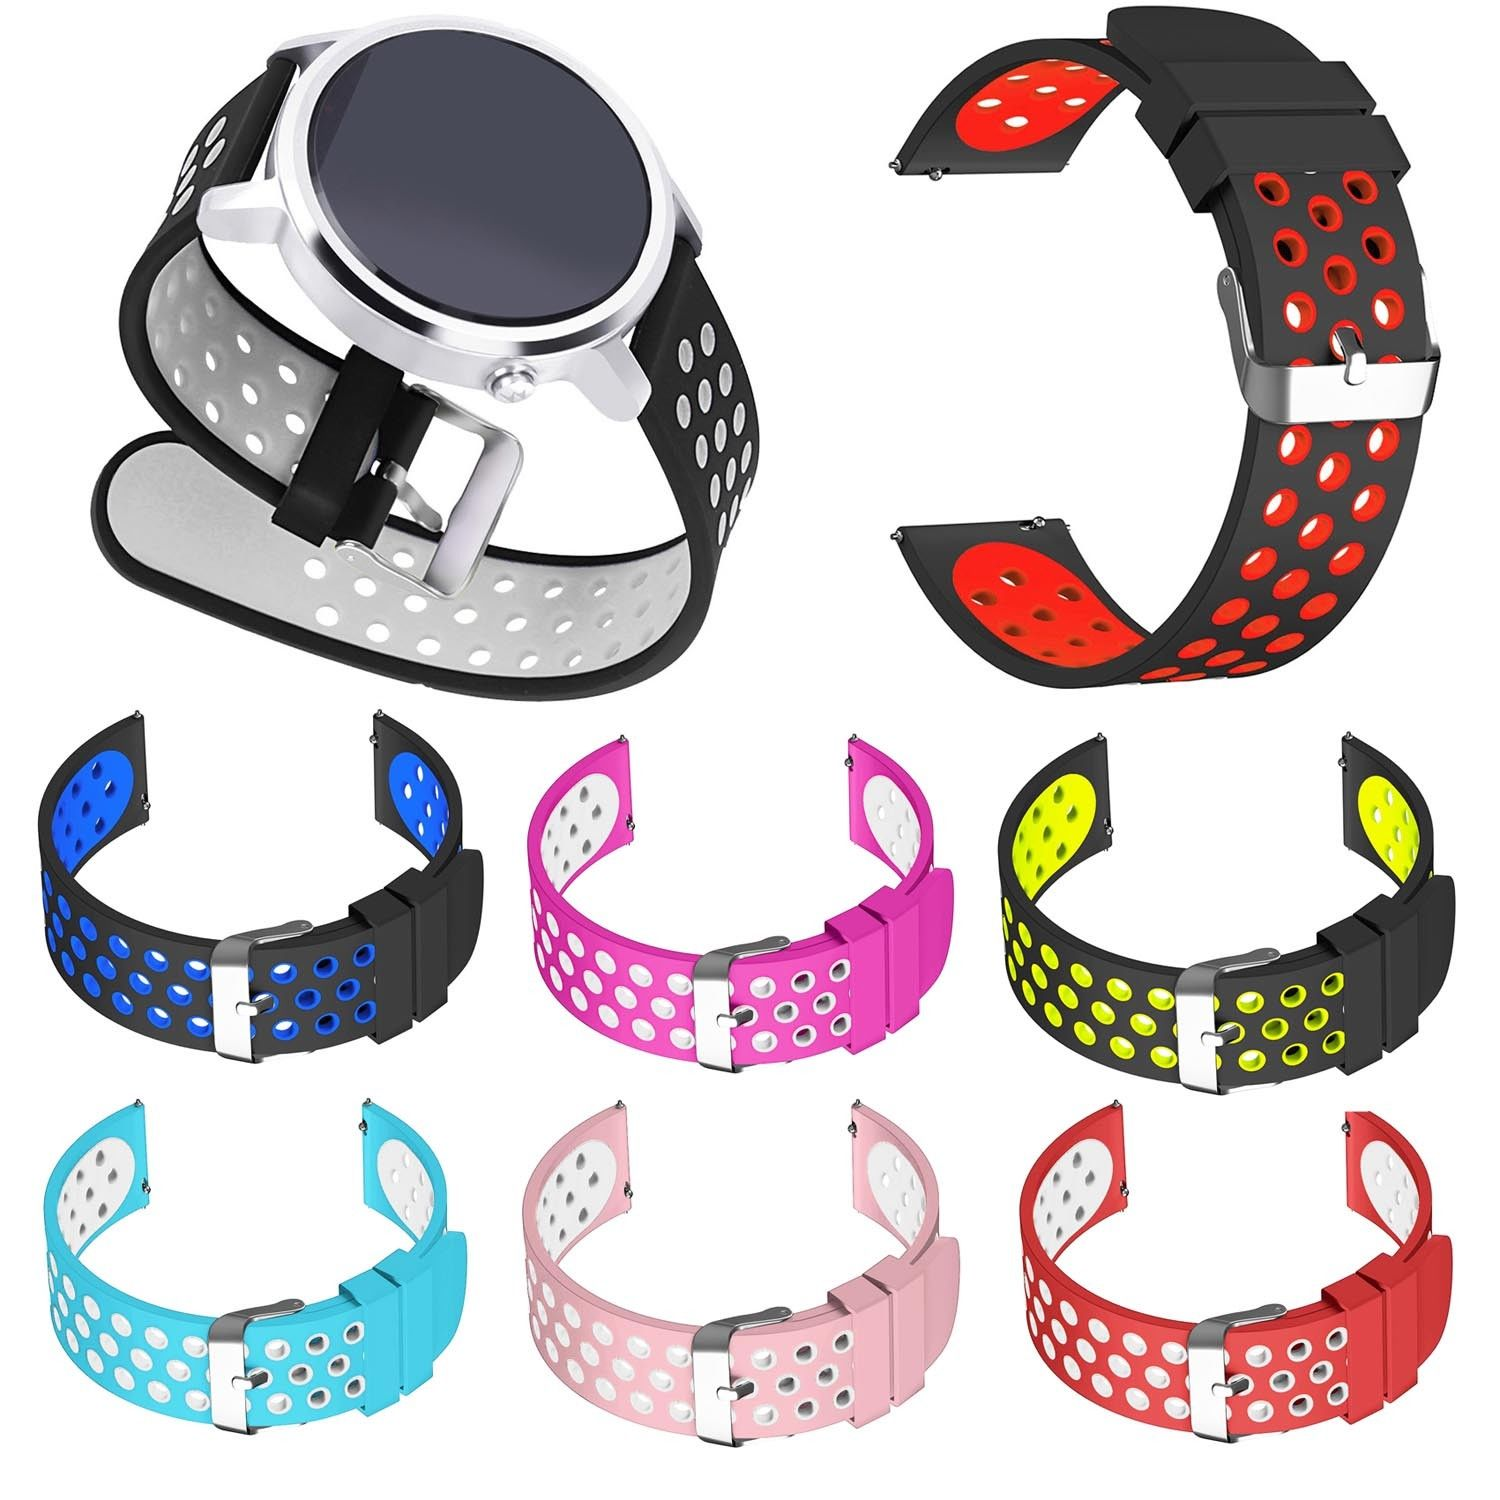 Dual Colors Silicone Strap for Huawei Watch 2 Sport Band 20mm / Huawei Watch 1st Gen Wristband 18mm Soft Bracelet w Metal Buckle eache silicone watch band strap replacement watch band can fit for swatch 17mm 19mm men women